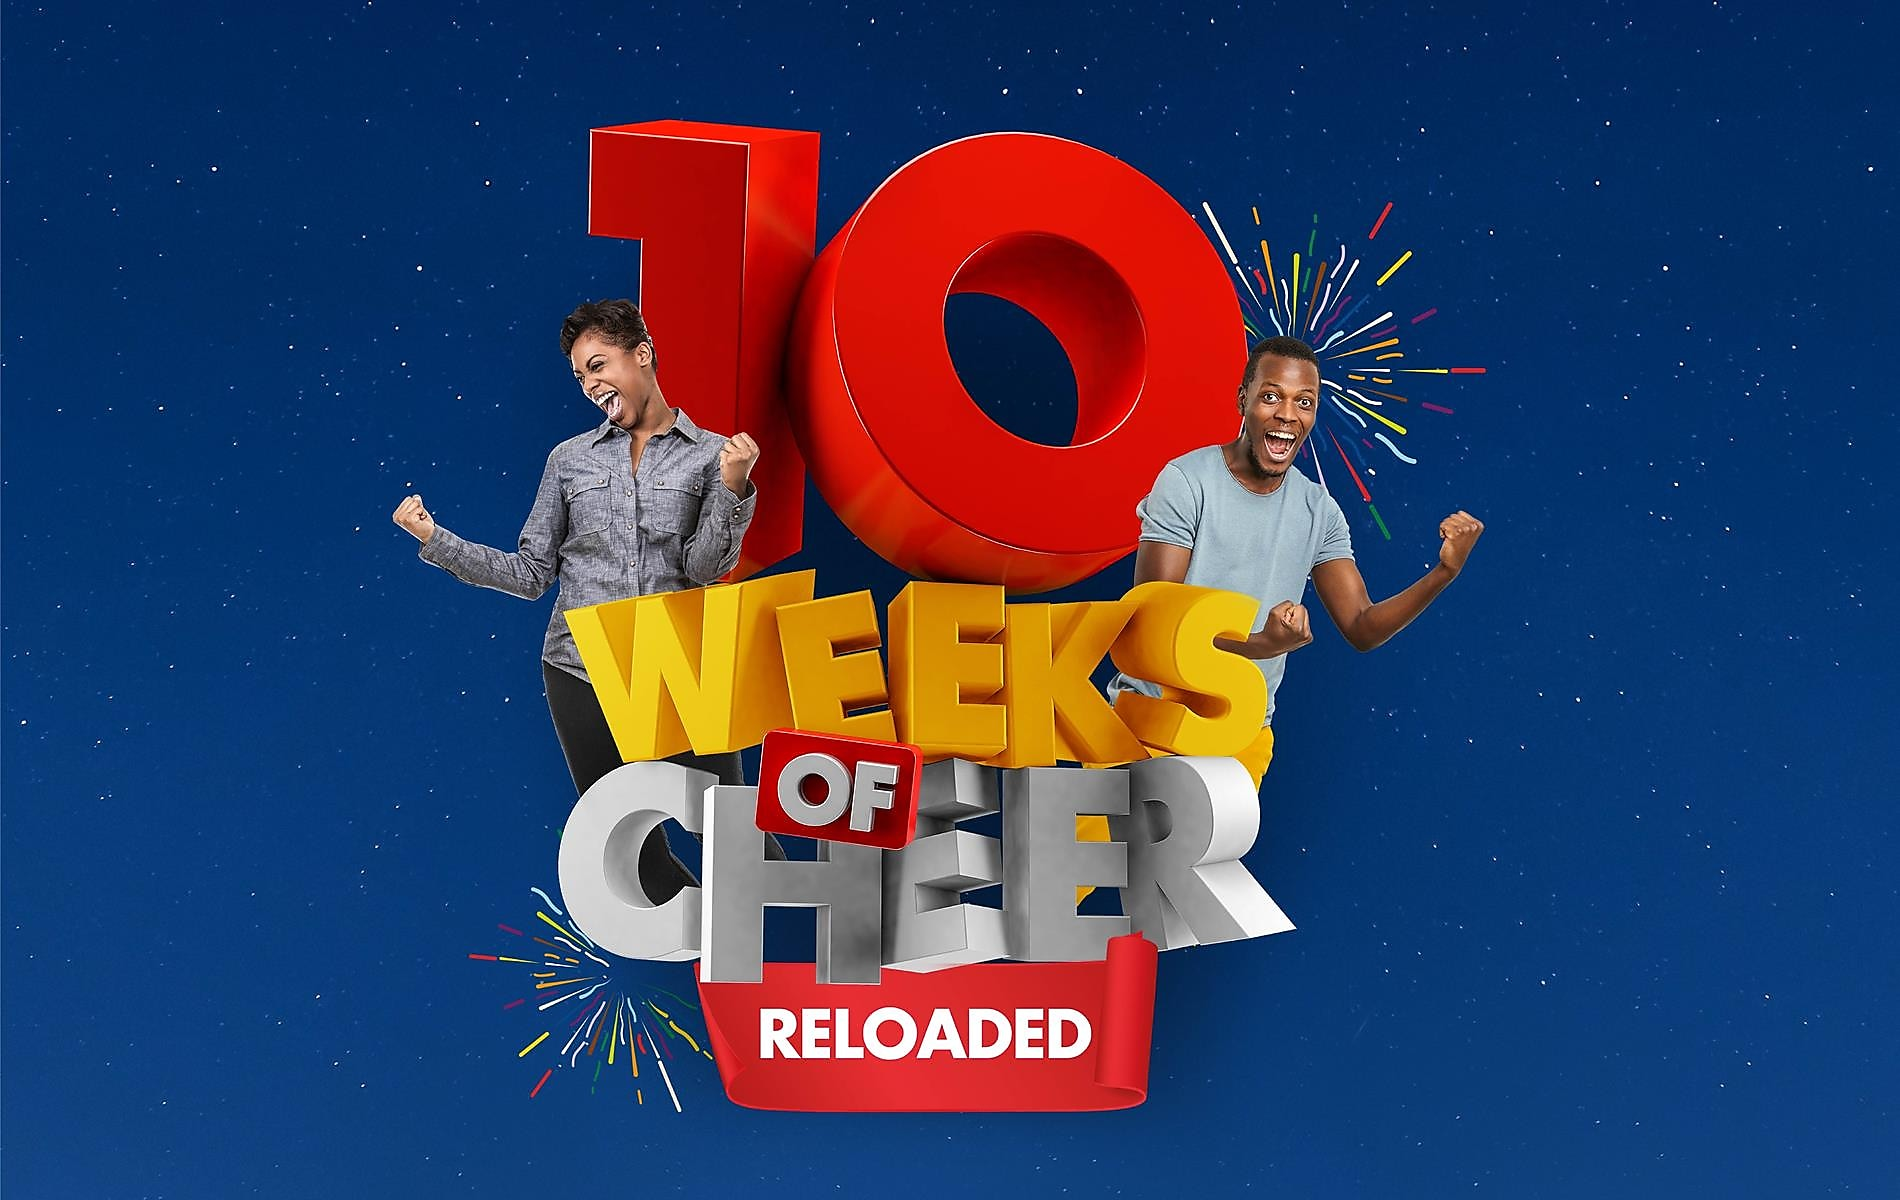 Win over 400M worth of prizes in 10 Weeks!